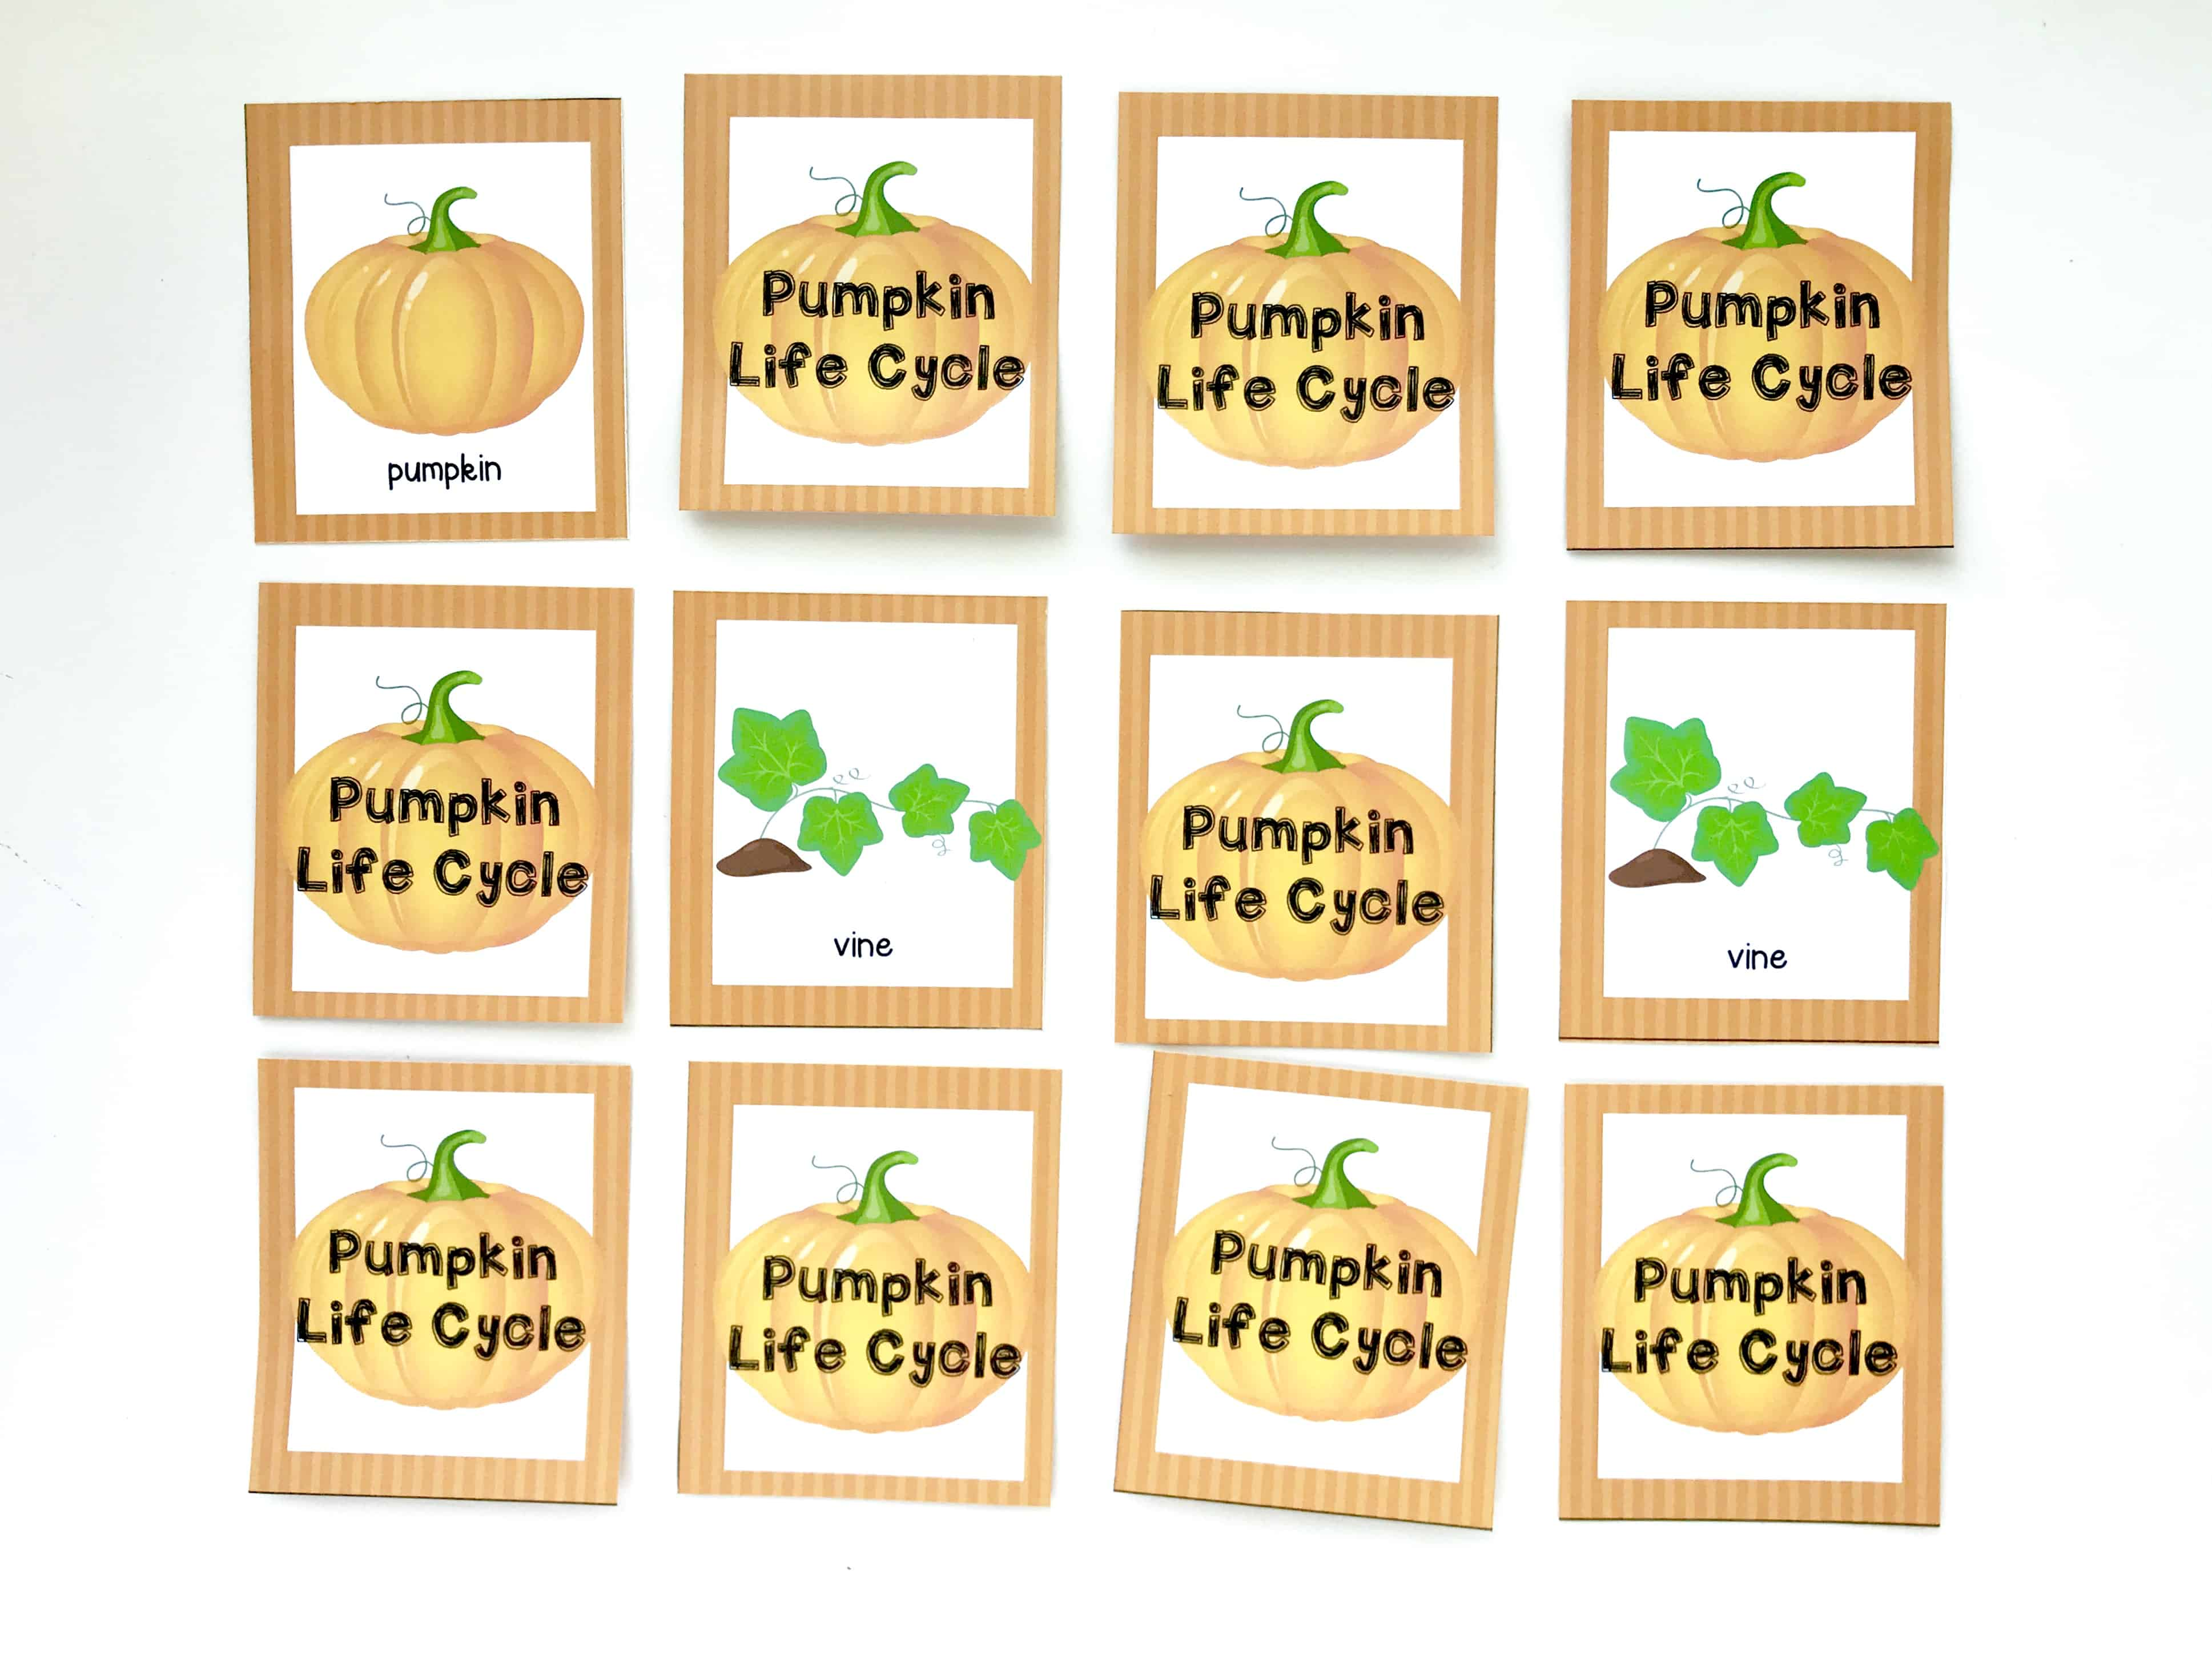 graphic relating to Pumpkin Life Cycle Printable named Pumpkin Everyday living Cycle Printable Memory Sport - I Can Coach My Little one!